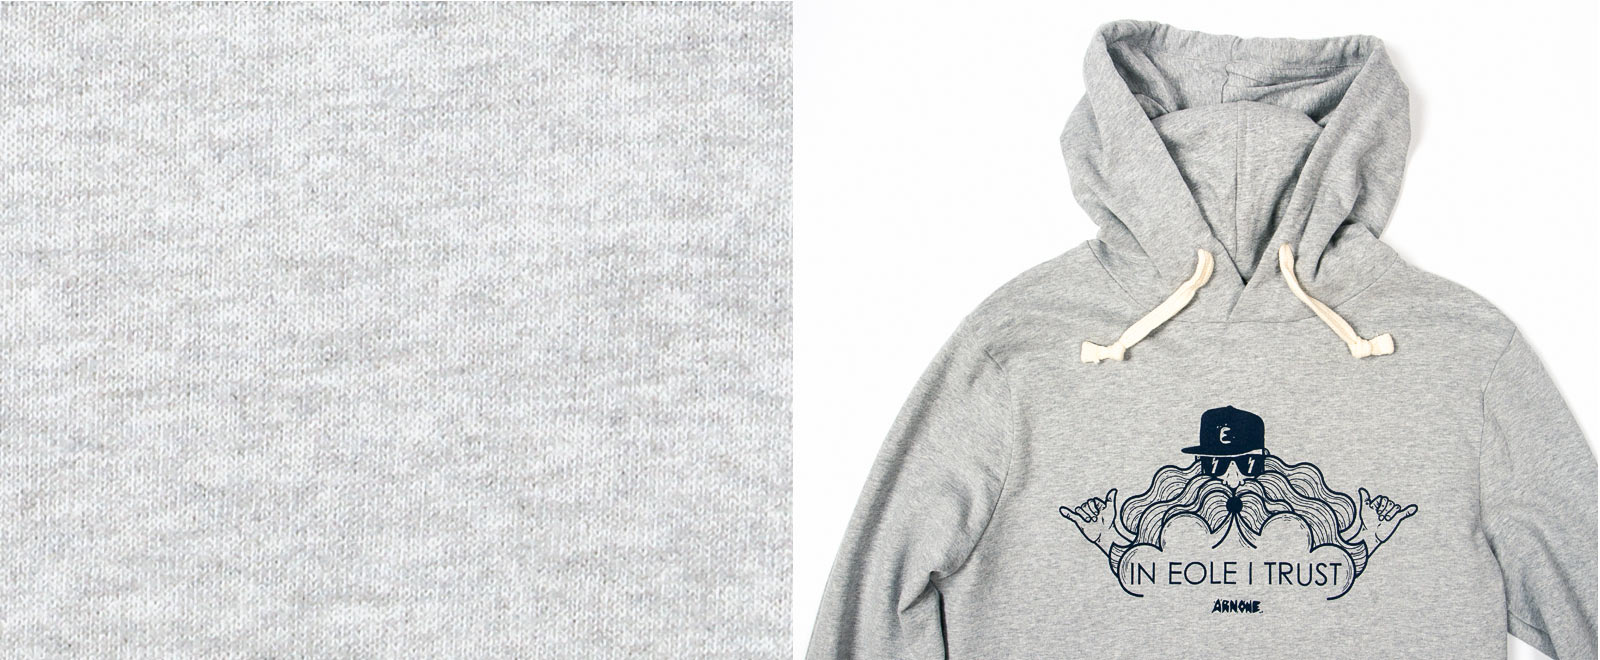 in-eole-i-trust-hoodies